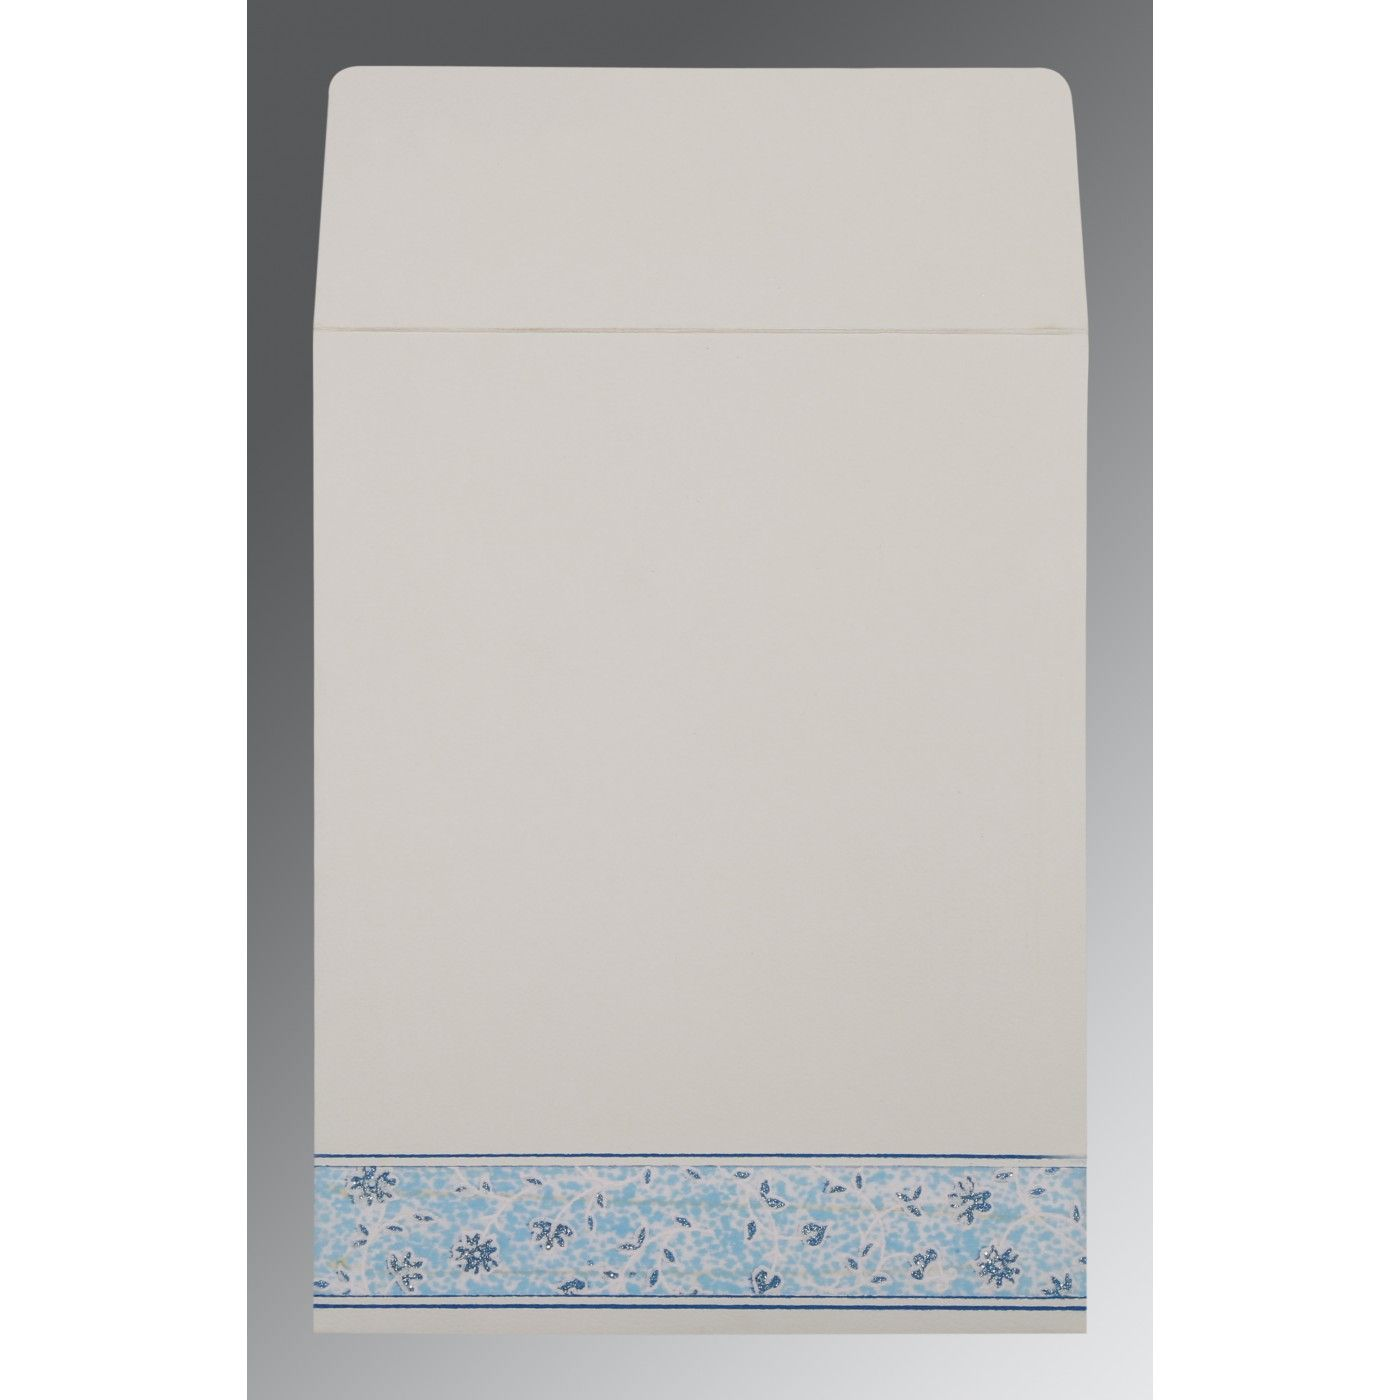 GRAYISH BLUE MATTE FLORAL THEMED - EMBOSSED WEDDING CARD : CRU-1285 - IndianWeddingCards